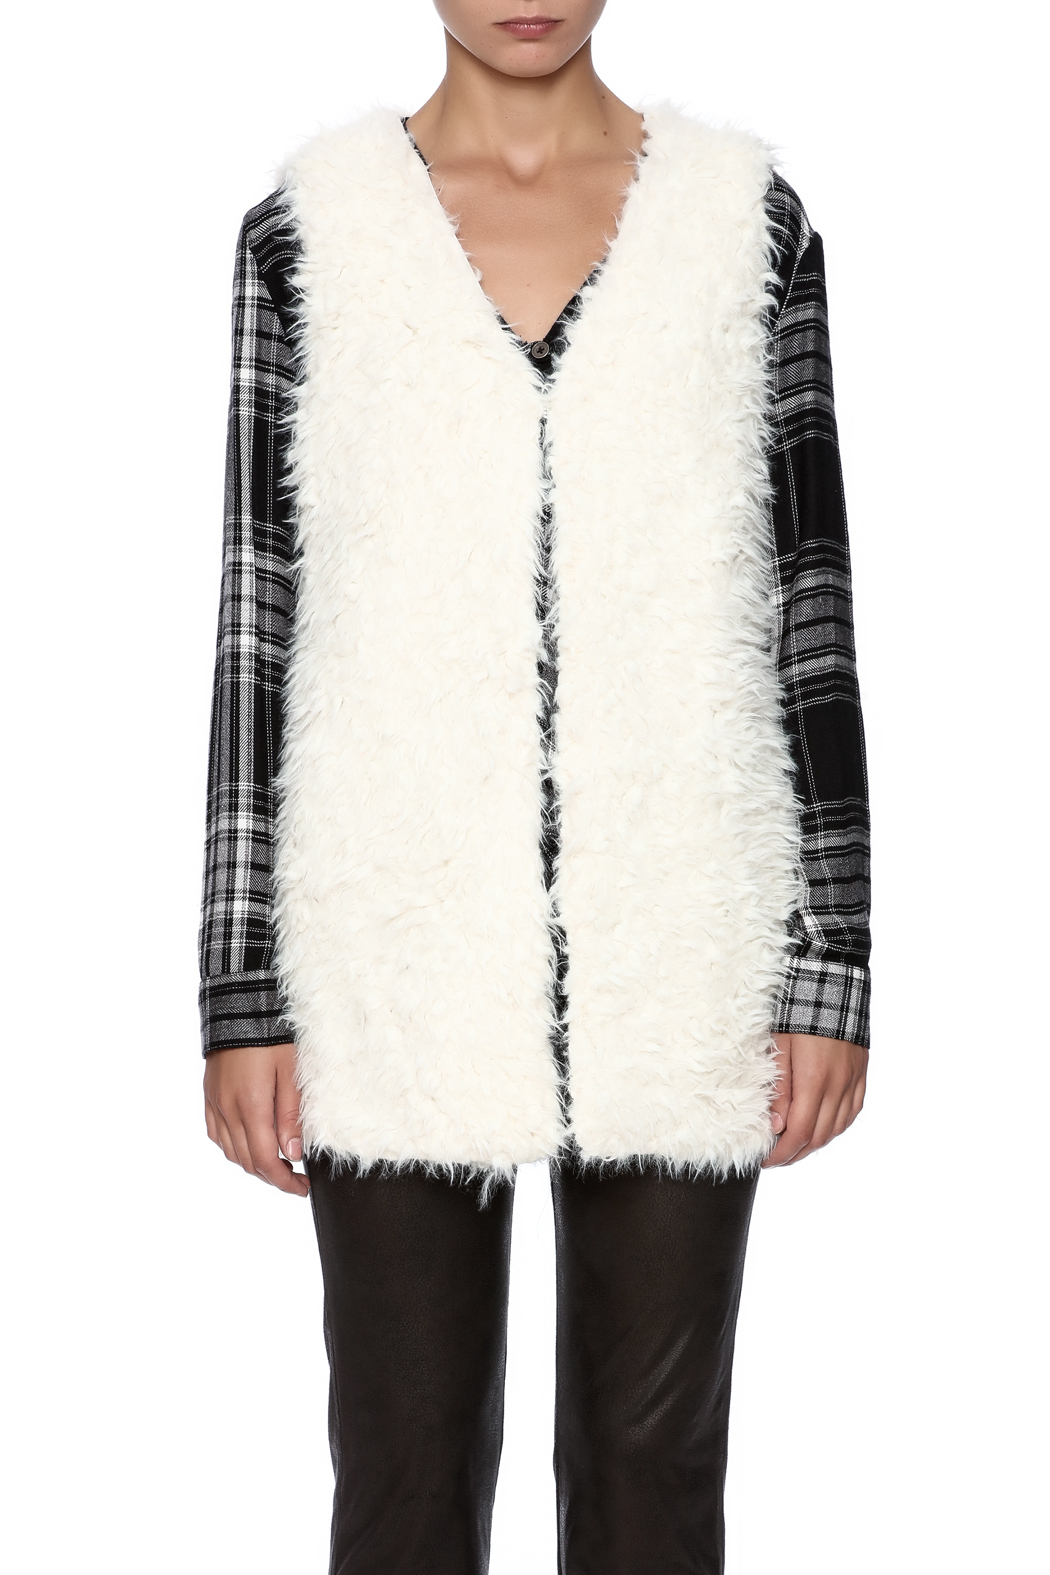 Shop Fur Vests online at THE ICONIC. Browse the most fashionable and high quality coats, jackets, jumpers & cardigans. Belle & Bloom Faux Fur Bunny Key Ring $ 30% OFF USE CODE BIRTHDAY. Tommy Tommy Hilfiger Funny Fur Pool Slides - Women's $ GIOSEPPO Asta Clutch $ Unreal Fur Fur Play Vest $ Unreal Fur .